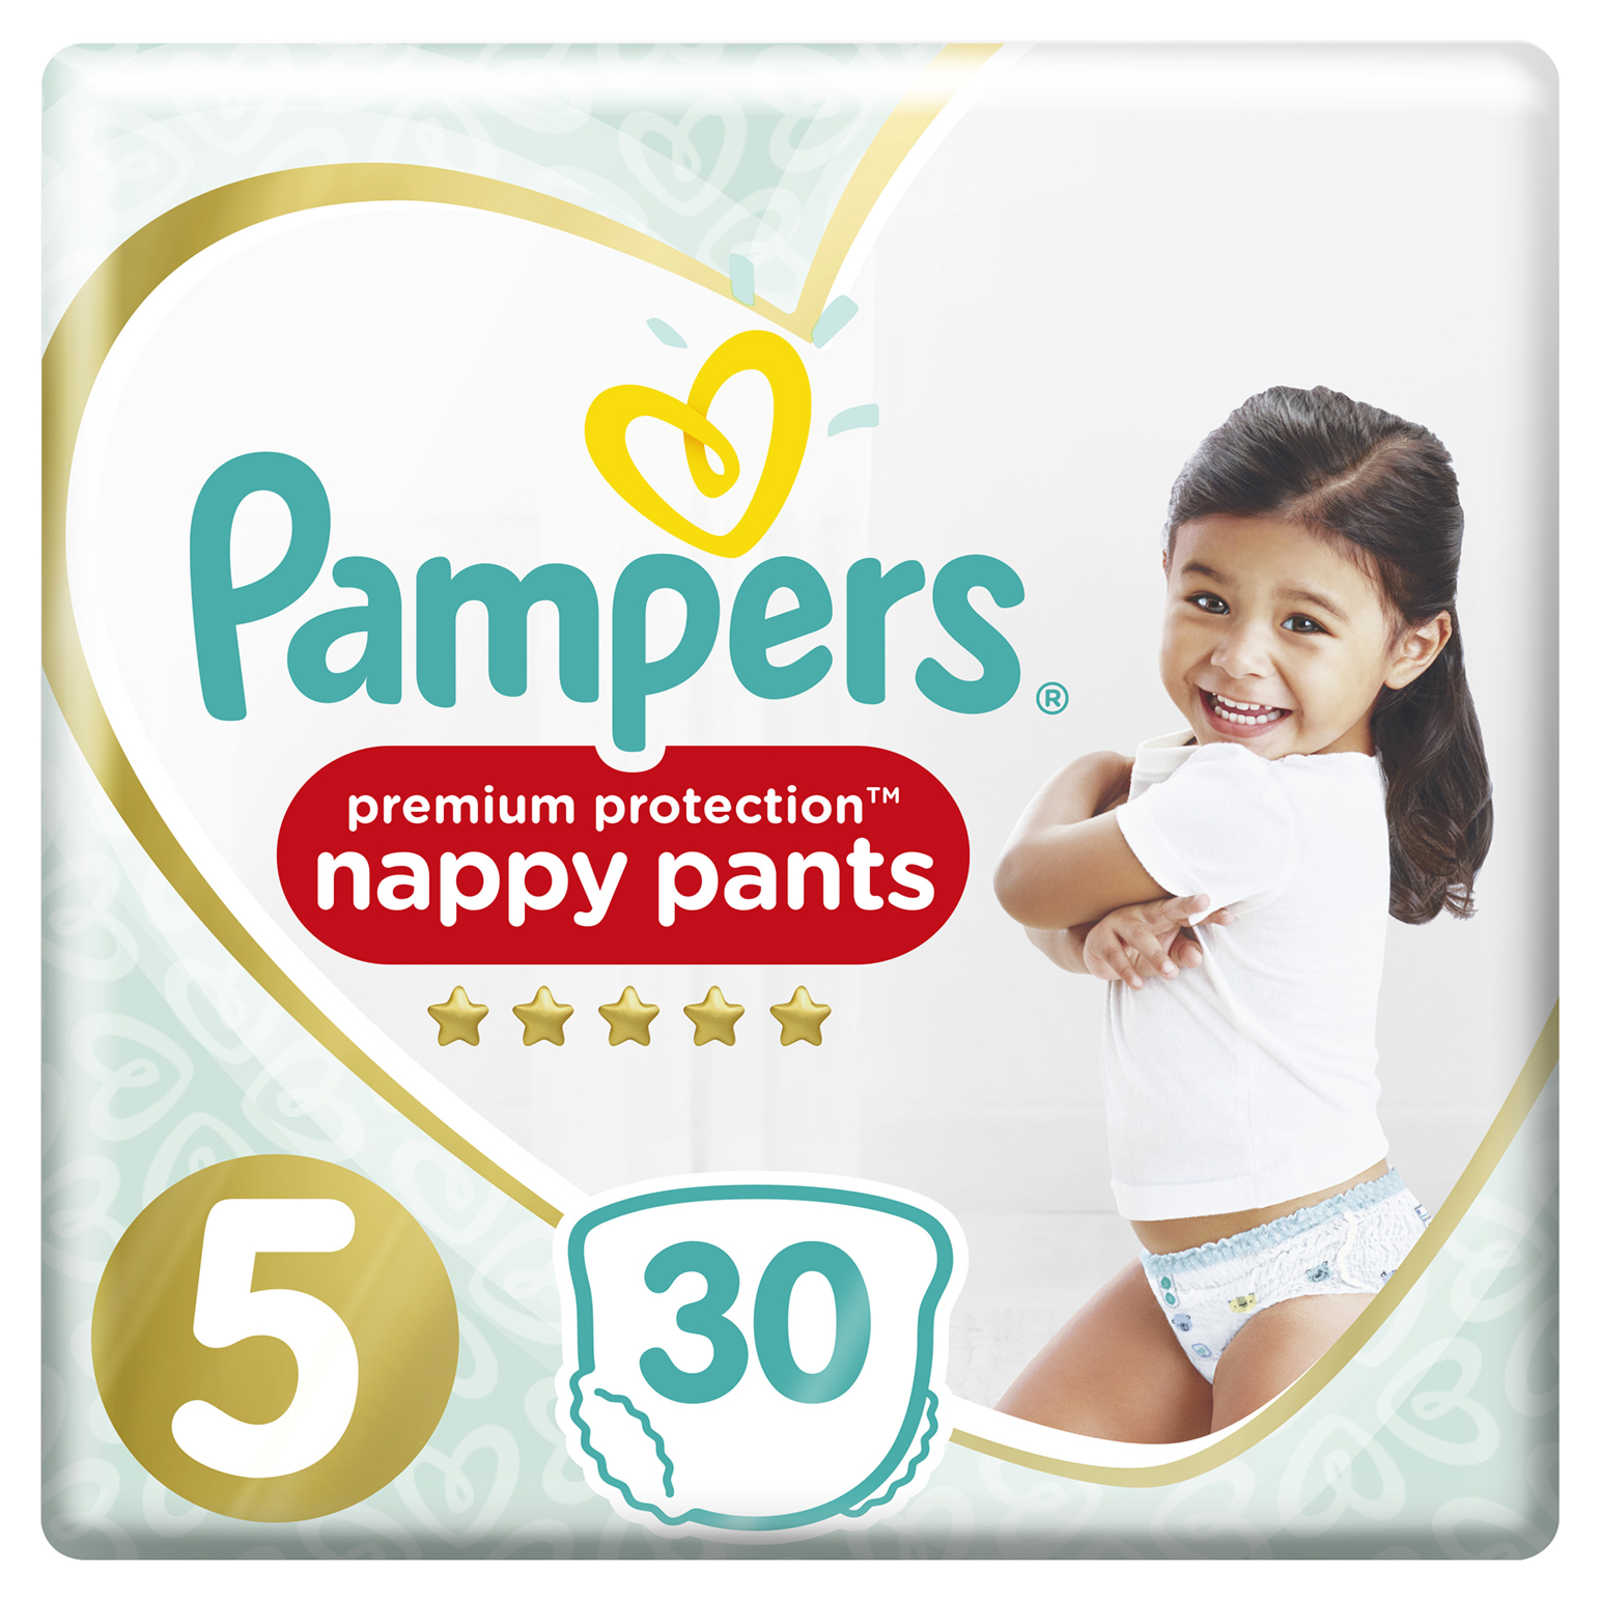 Pampers-Premium Protection